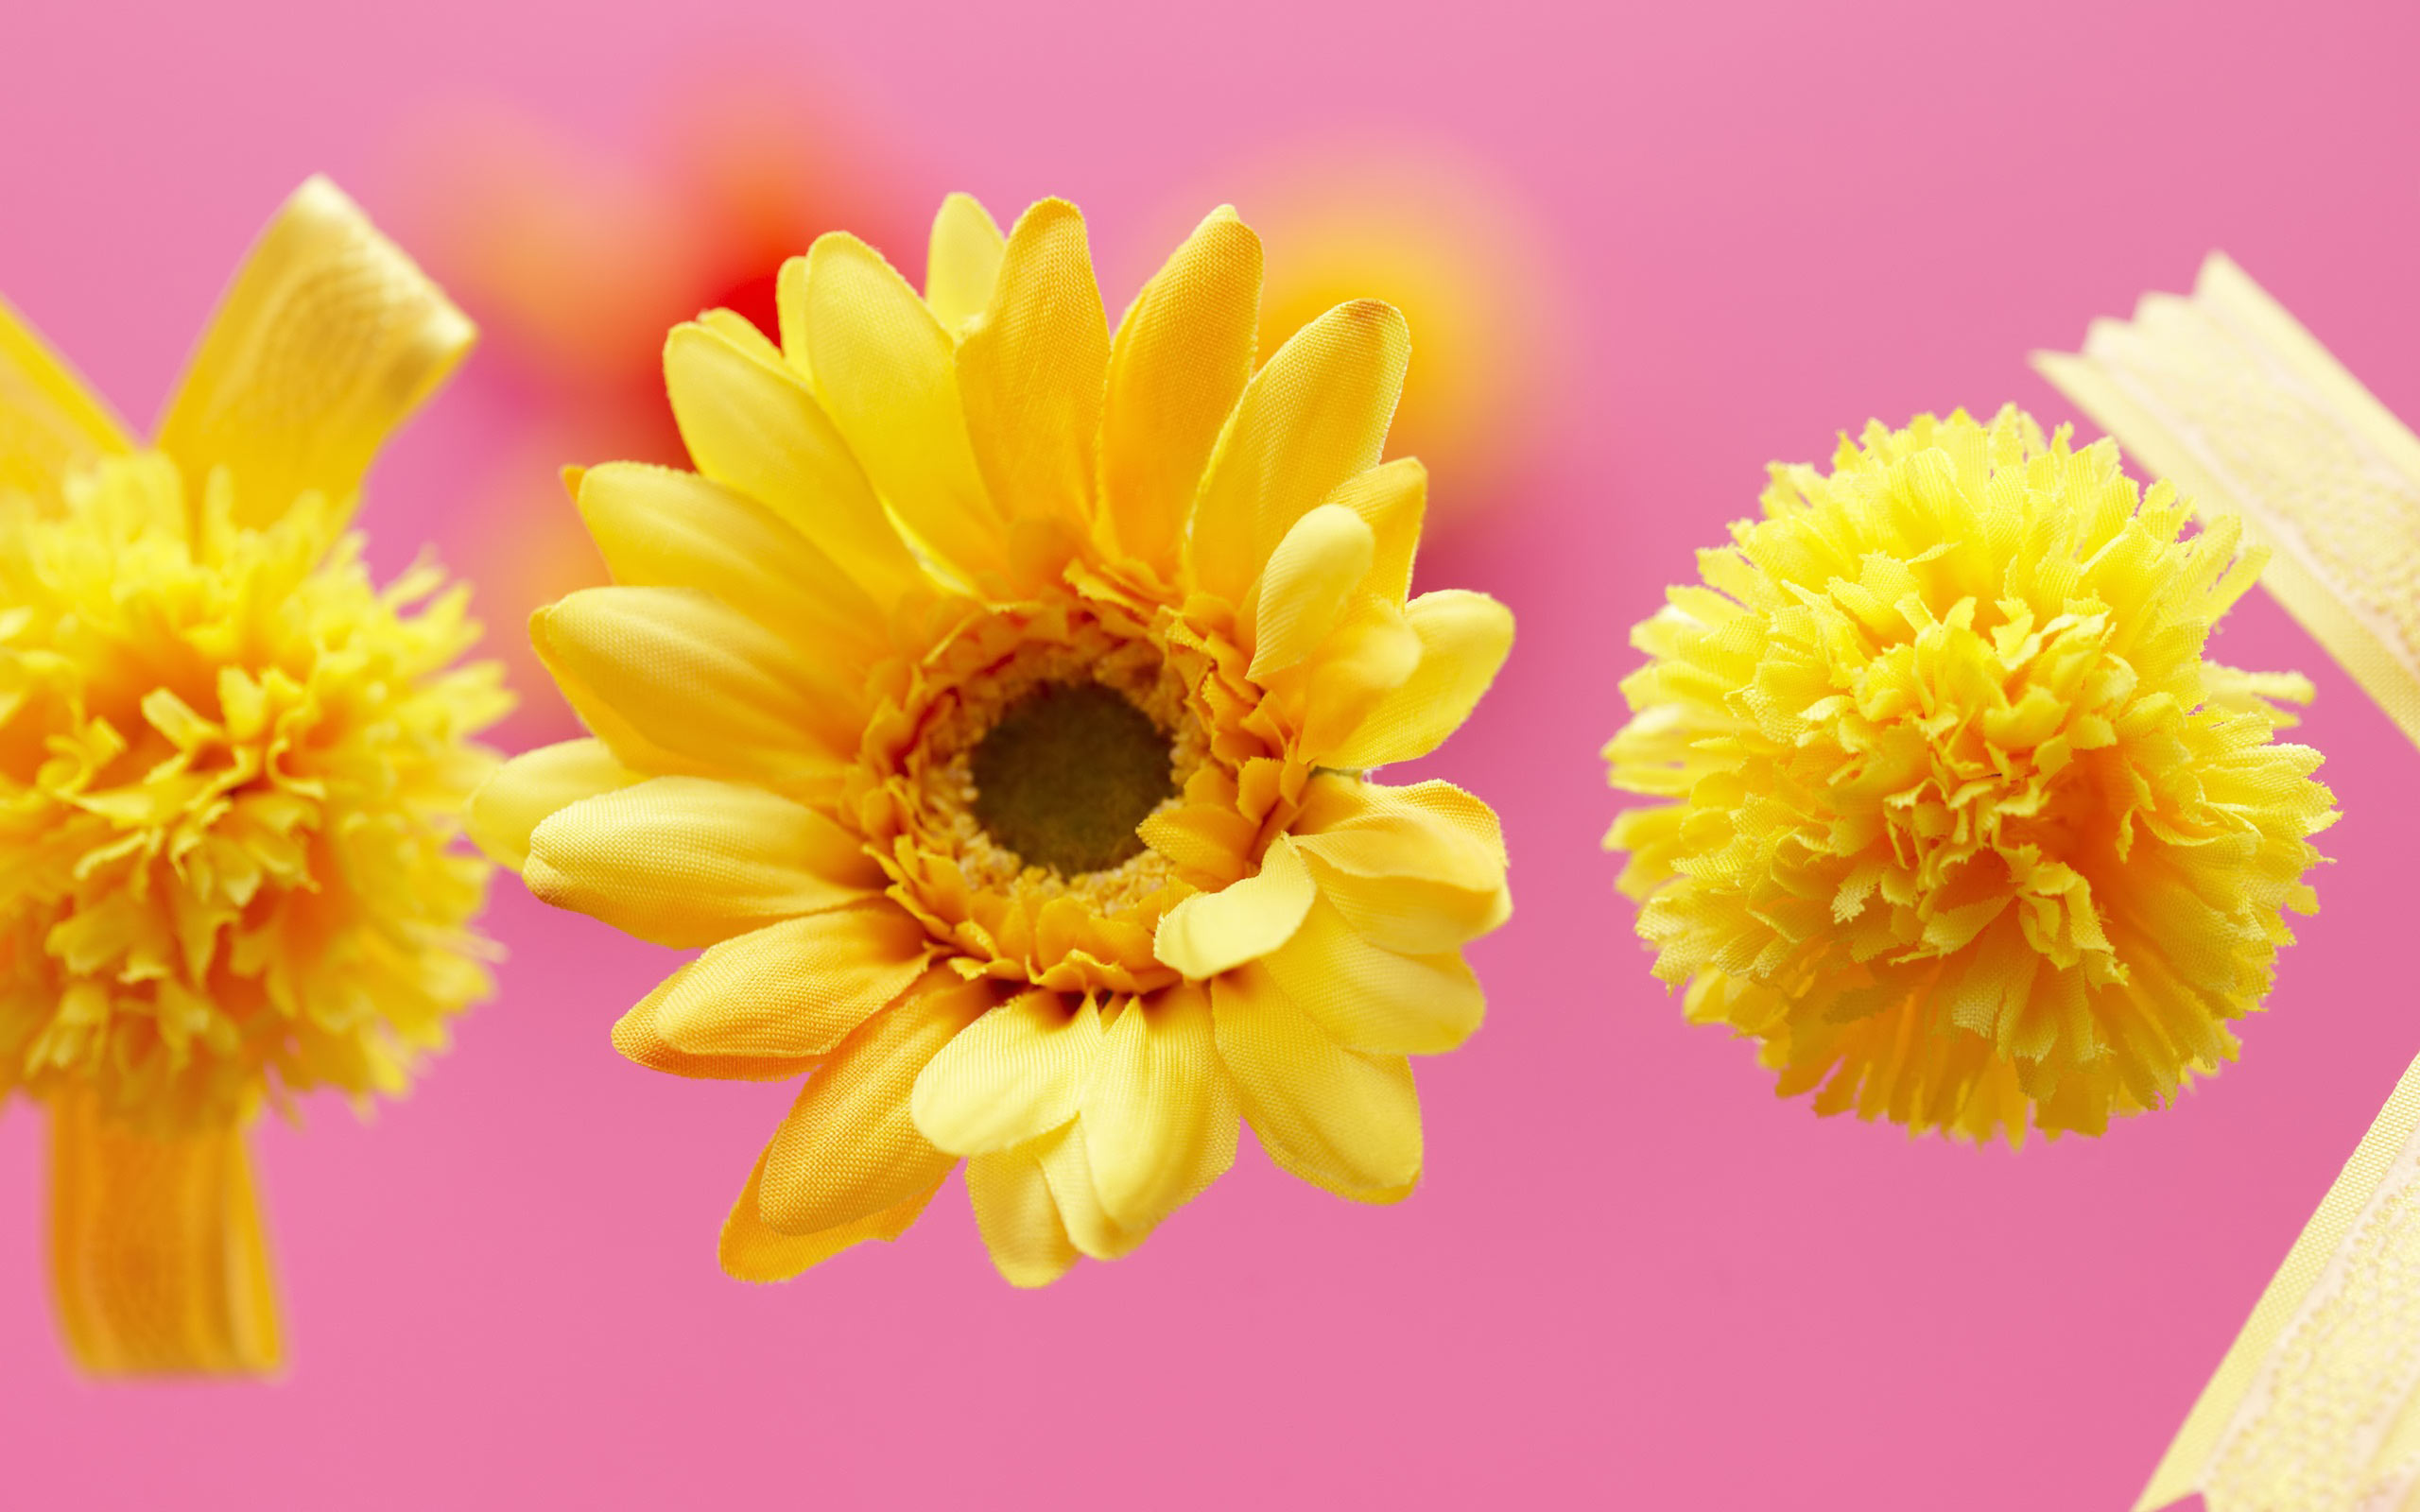 yellow flower backgrounds - photo #27